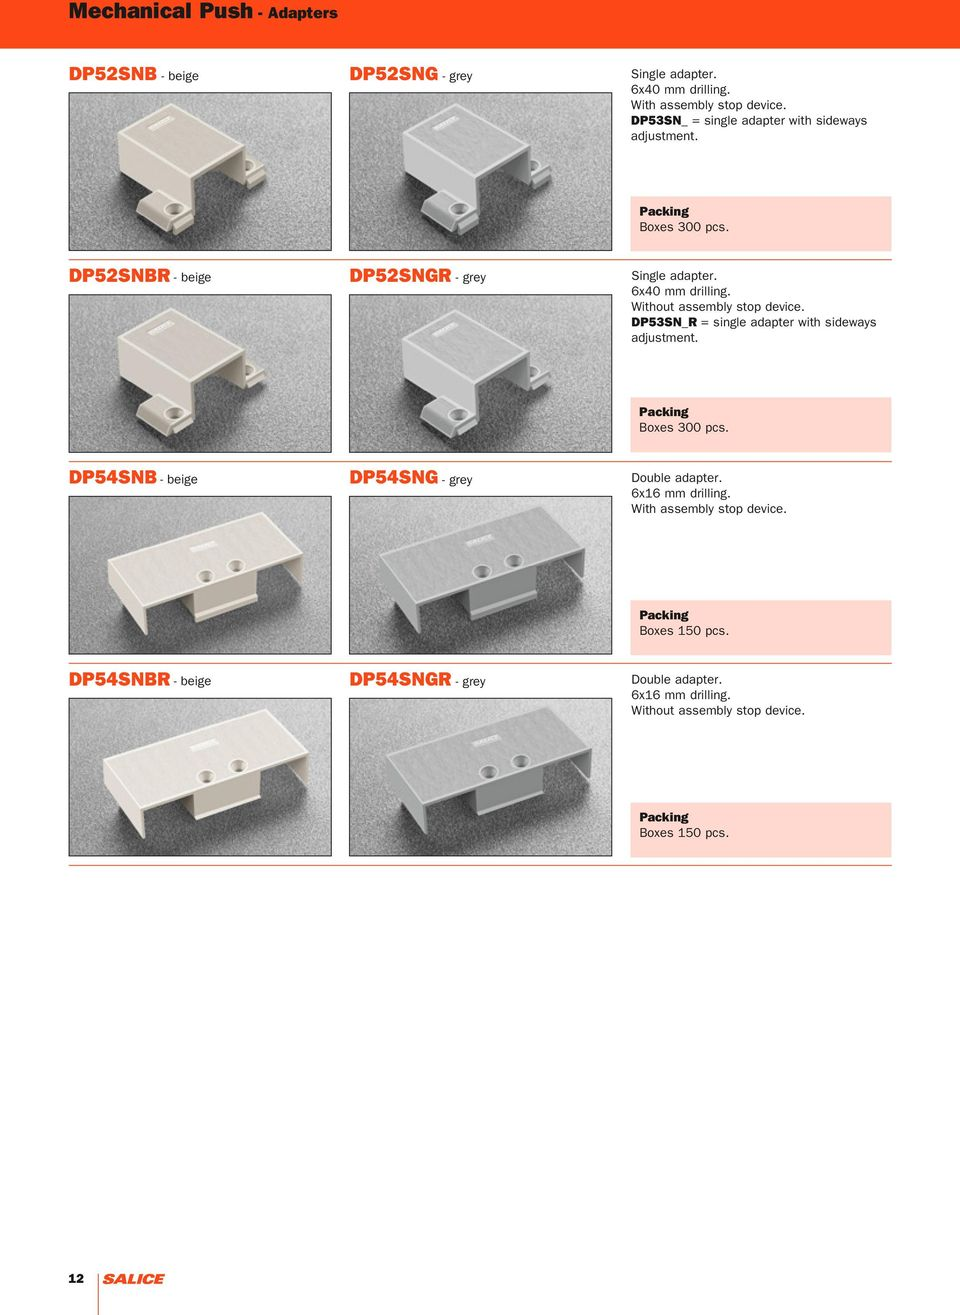 Without assembly stop device. DP53SN_R = single adapter with sideways adjustment. Boxes 300 pcs. DP54SNB DP54SNG - beige - grey Double adapter.